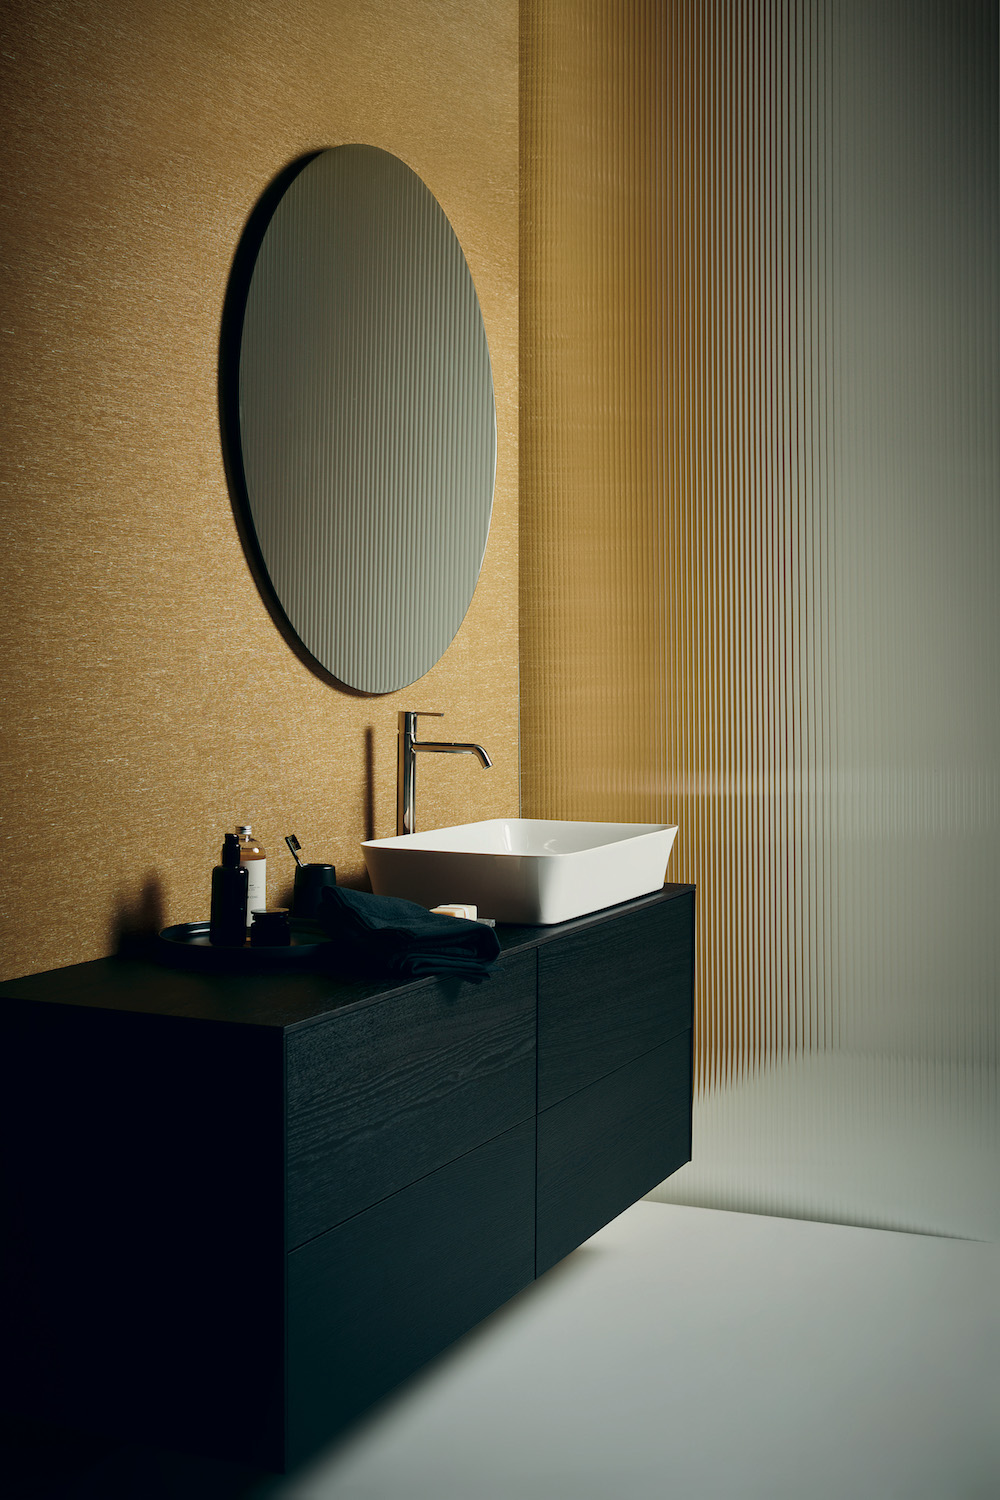 Image of colourful bathrooms and white ceramic basin